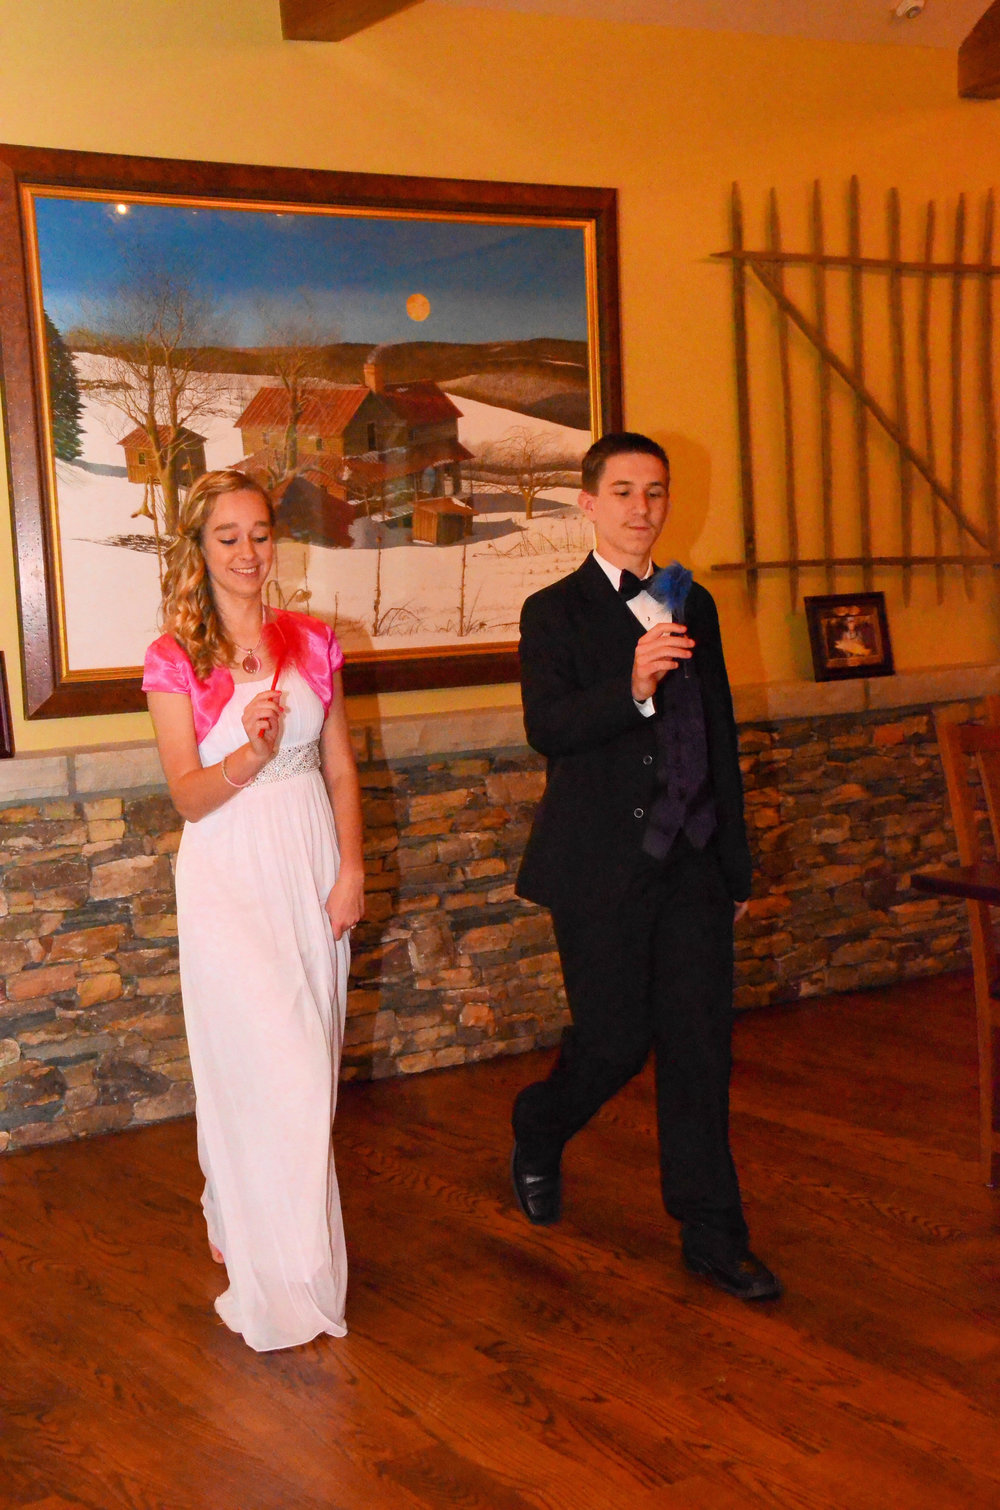 2013-05-18_teenformal_22.jpg